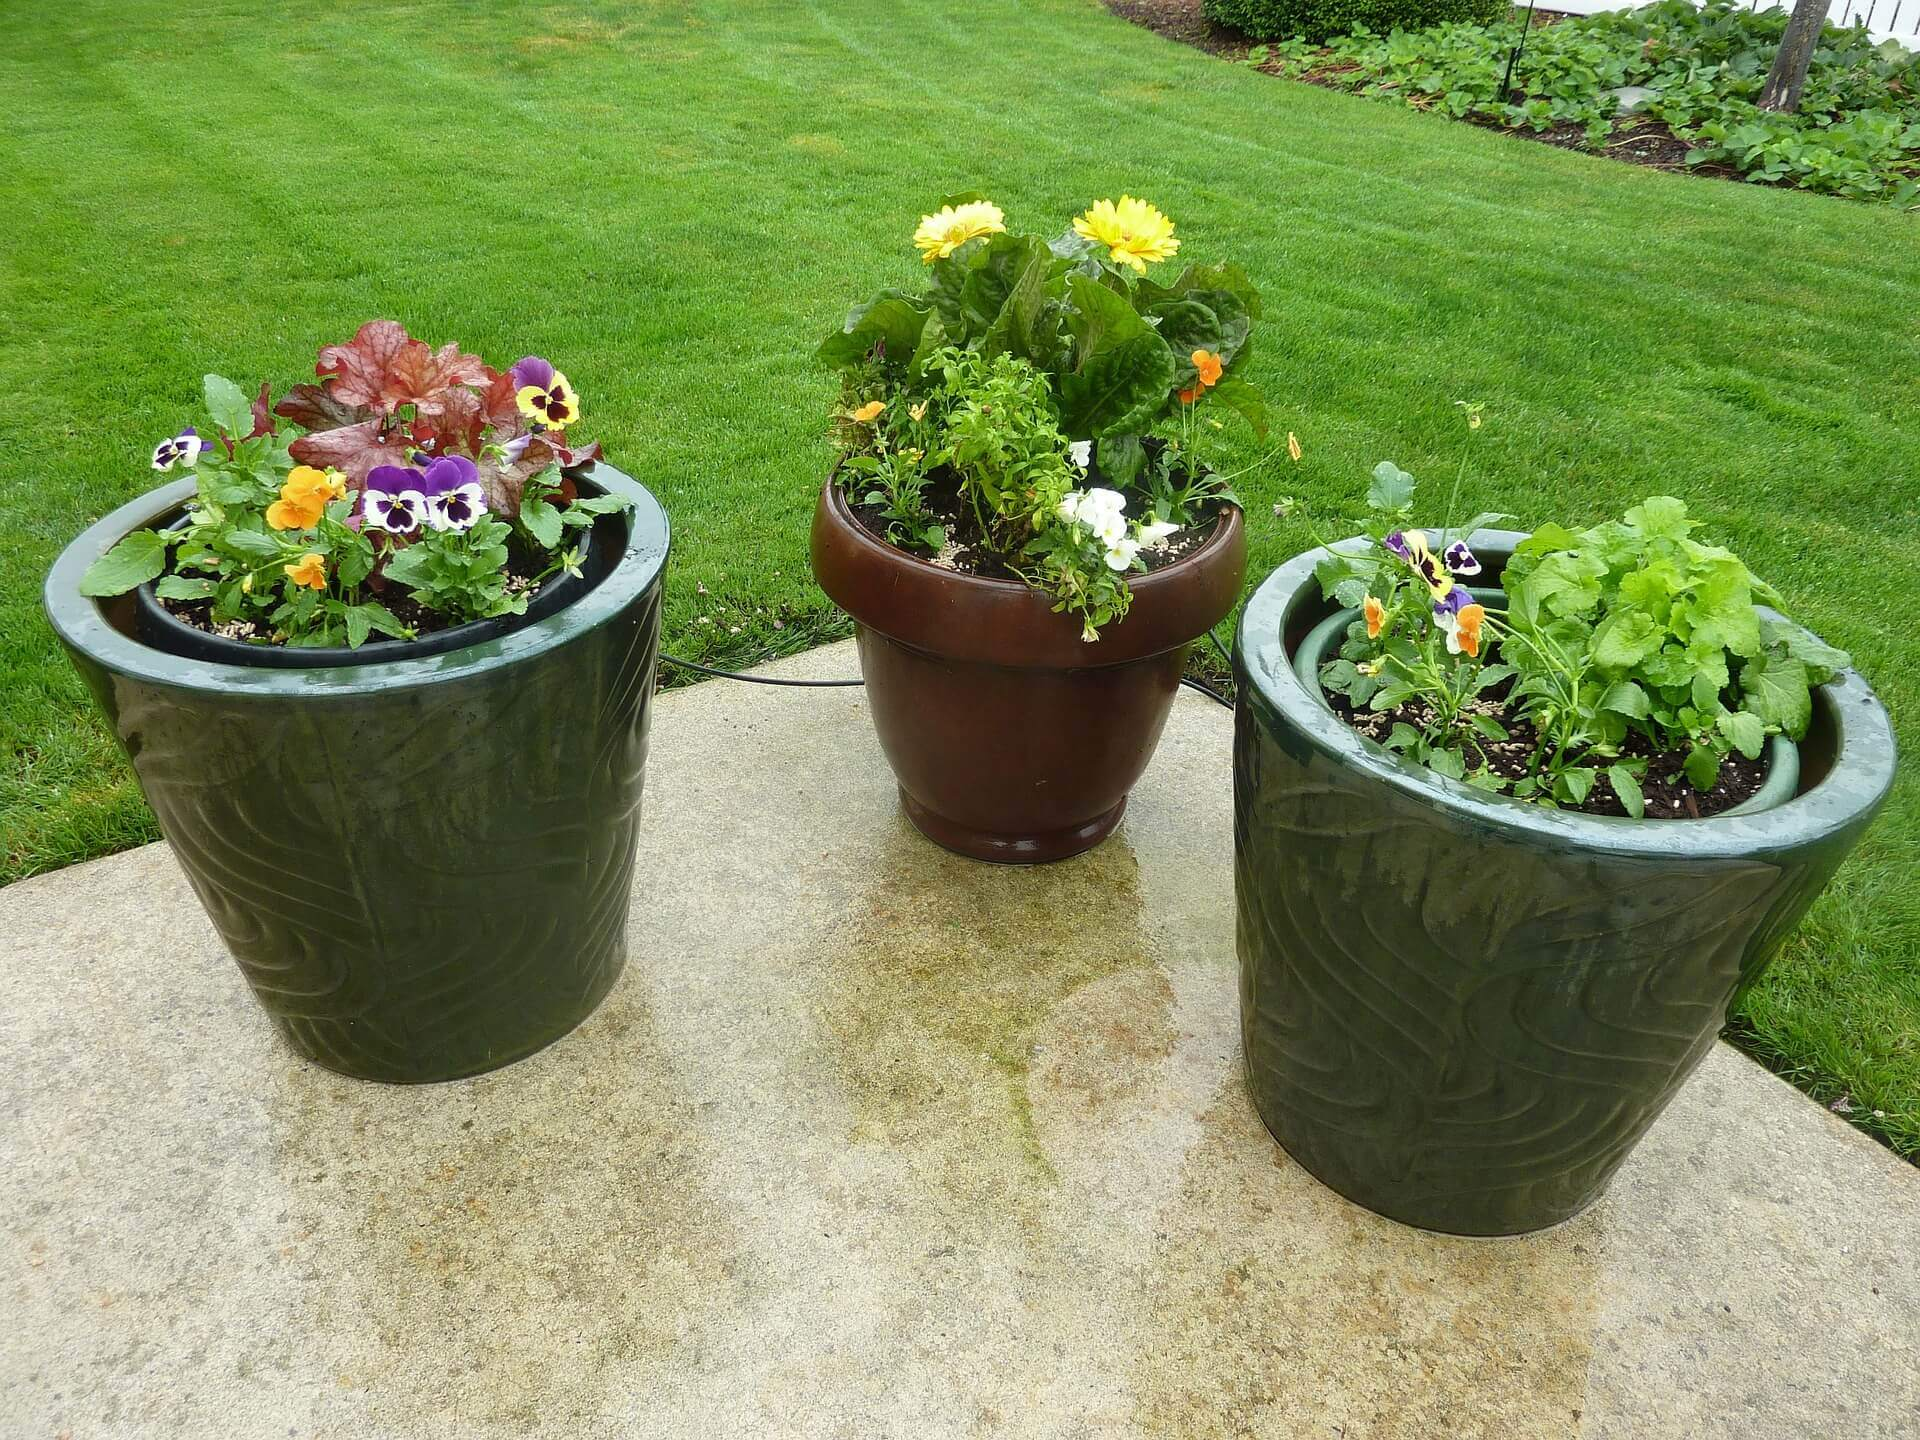 Three potted plants on outdoor patio.